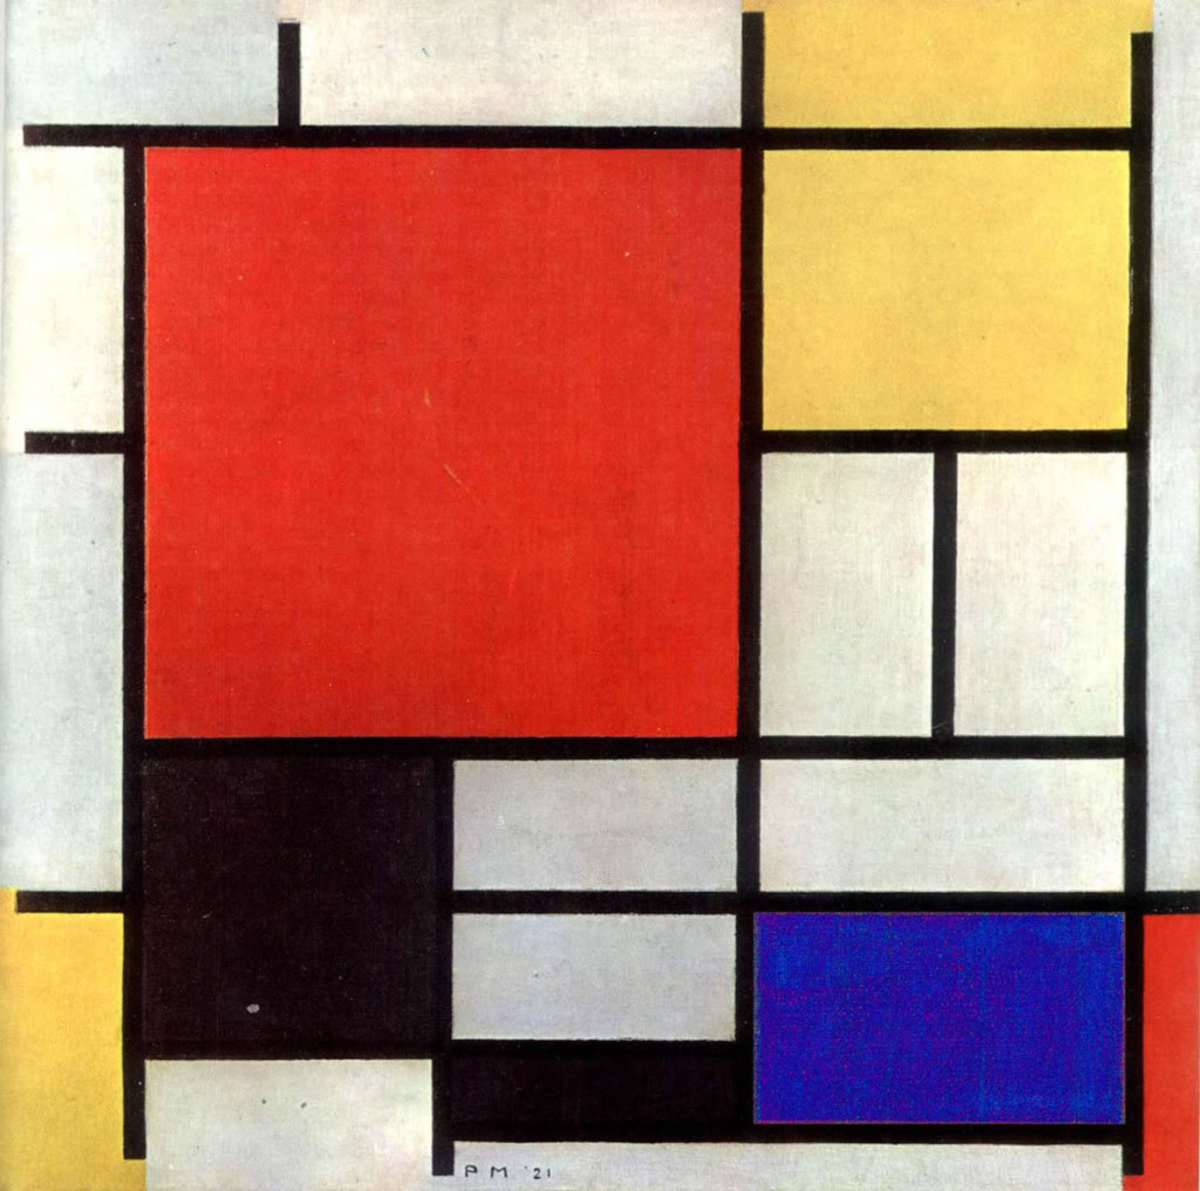 Mondrian has many simple paintings using shape, line, and primary color that work well for preschool critiques.